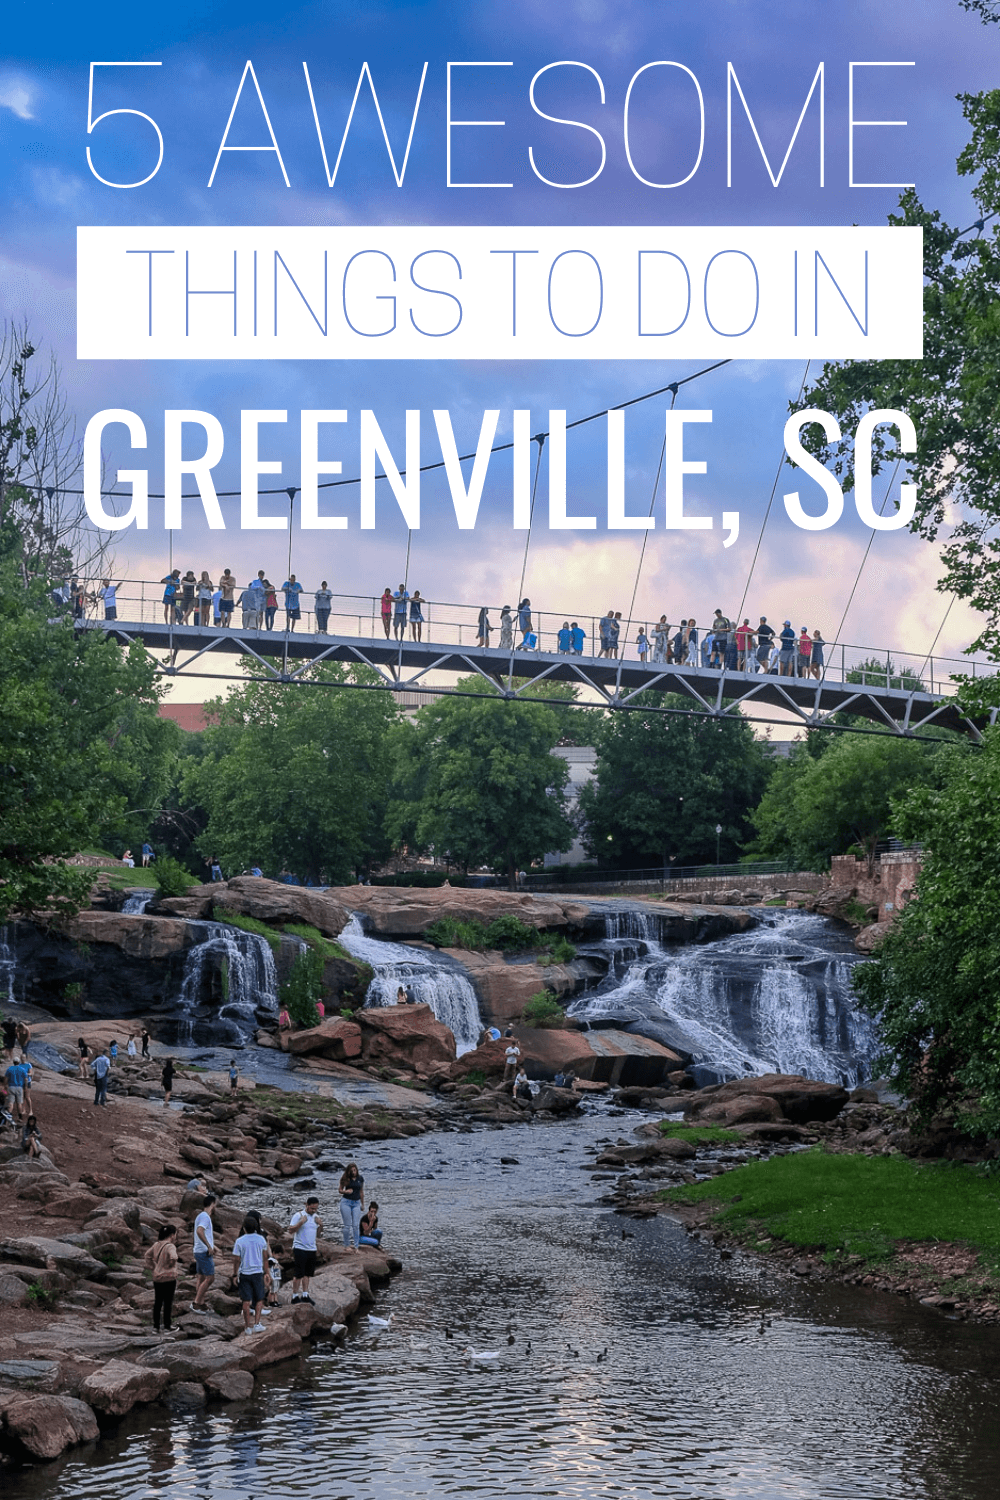 Are you visiting Greenville, SC? Discover the best things to do in Greenville, SC to make the most of your trip! Parks, waterfalls, rooftop bars, breweries, hikes, lakes & more!